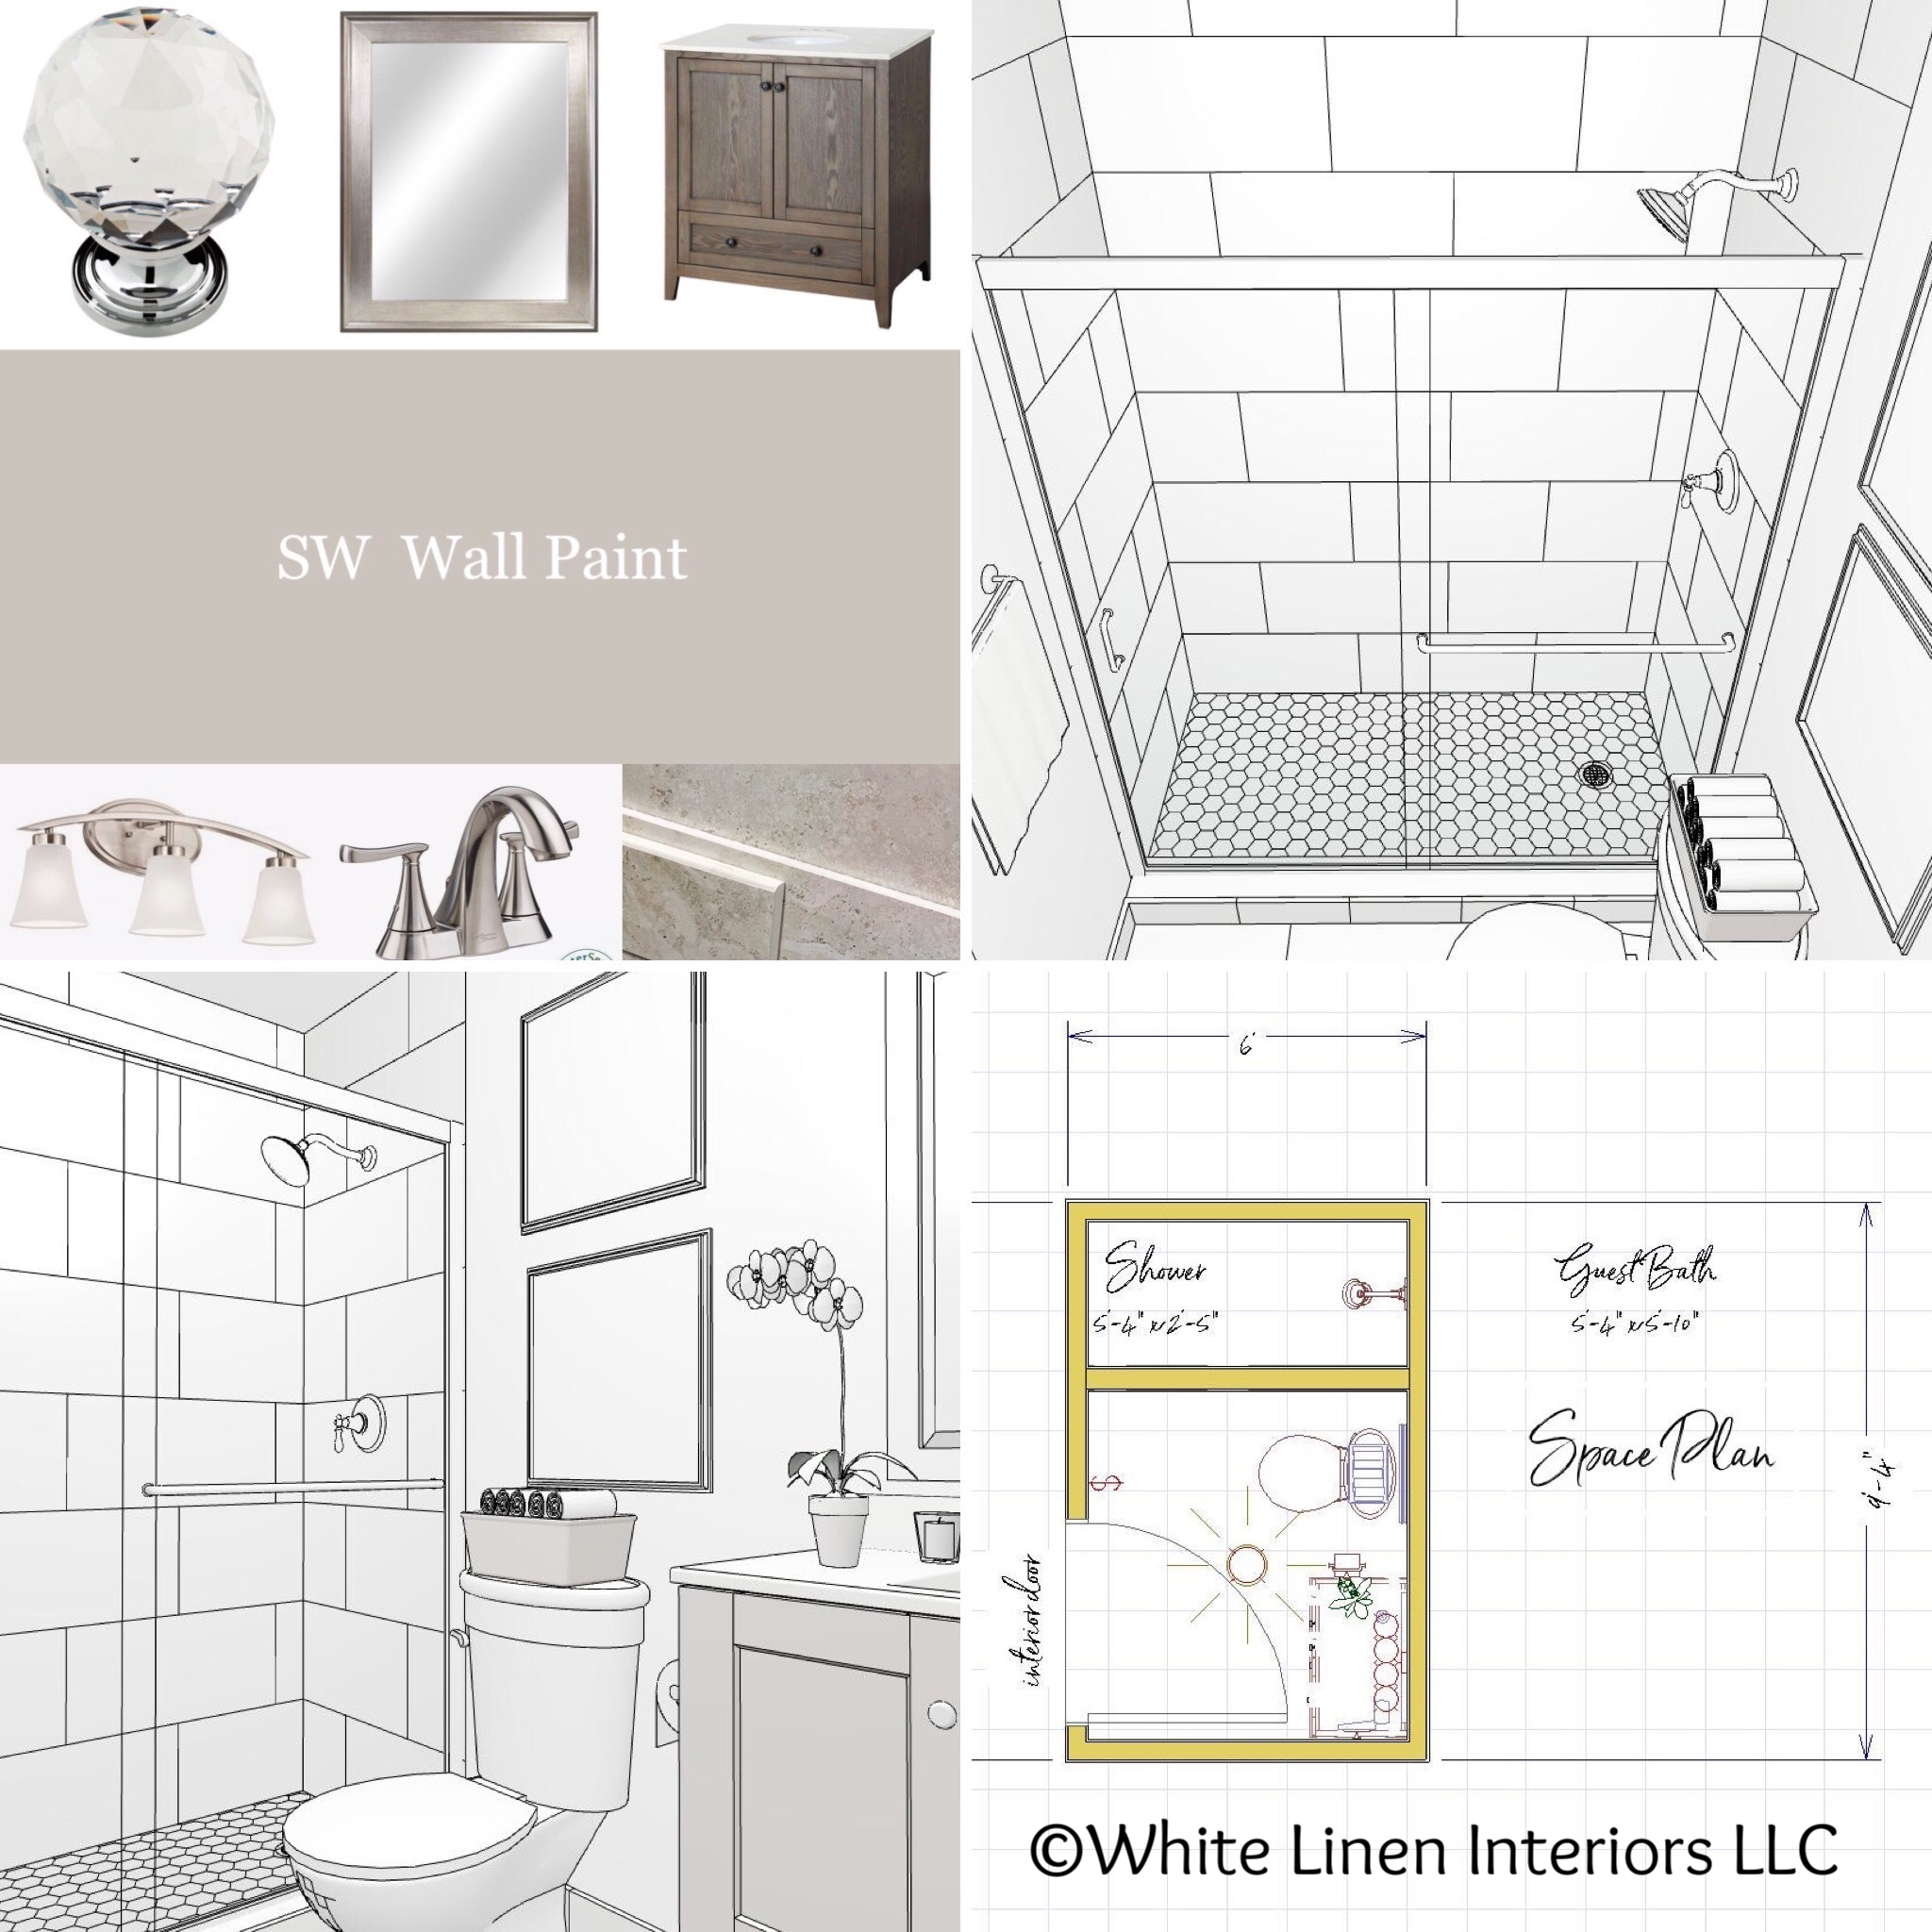 BATH-REMODEL-DESIGN-CONCEPT-BOARD-WHITE-LINEN-INTERIORS-MIAMI.jpg